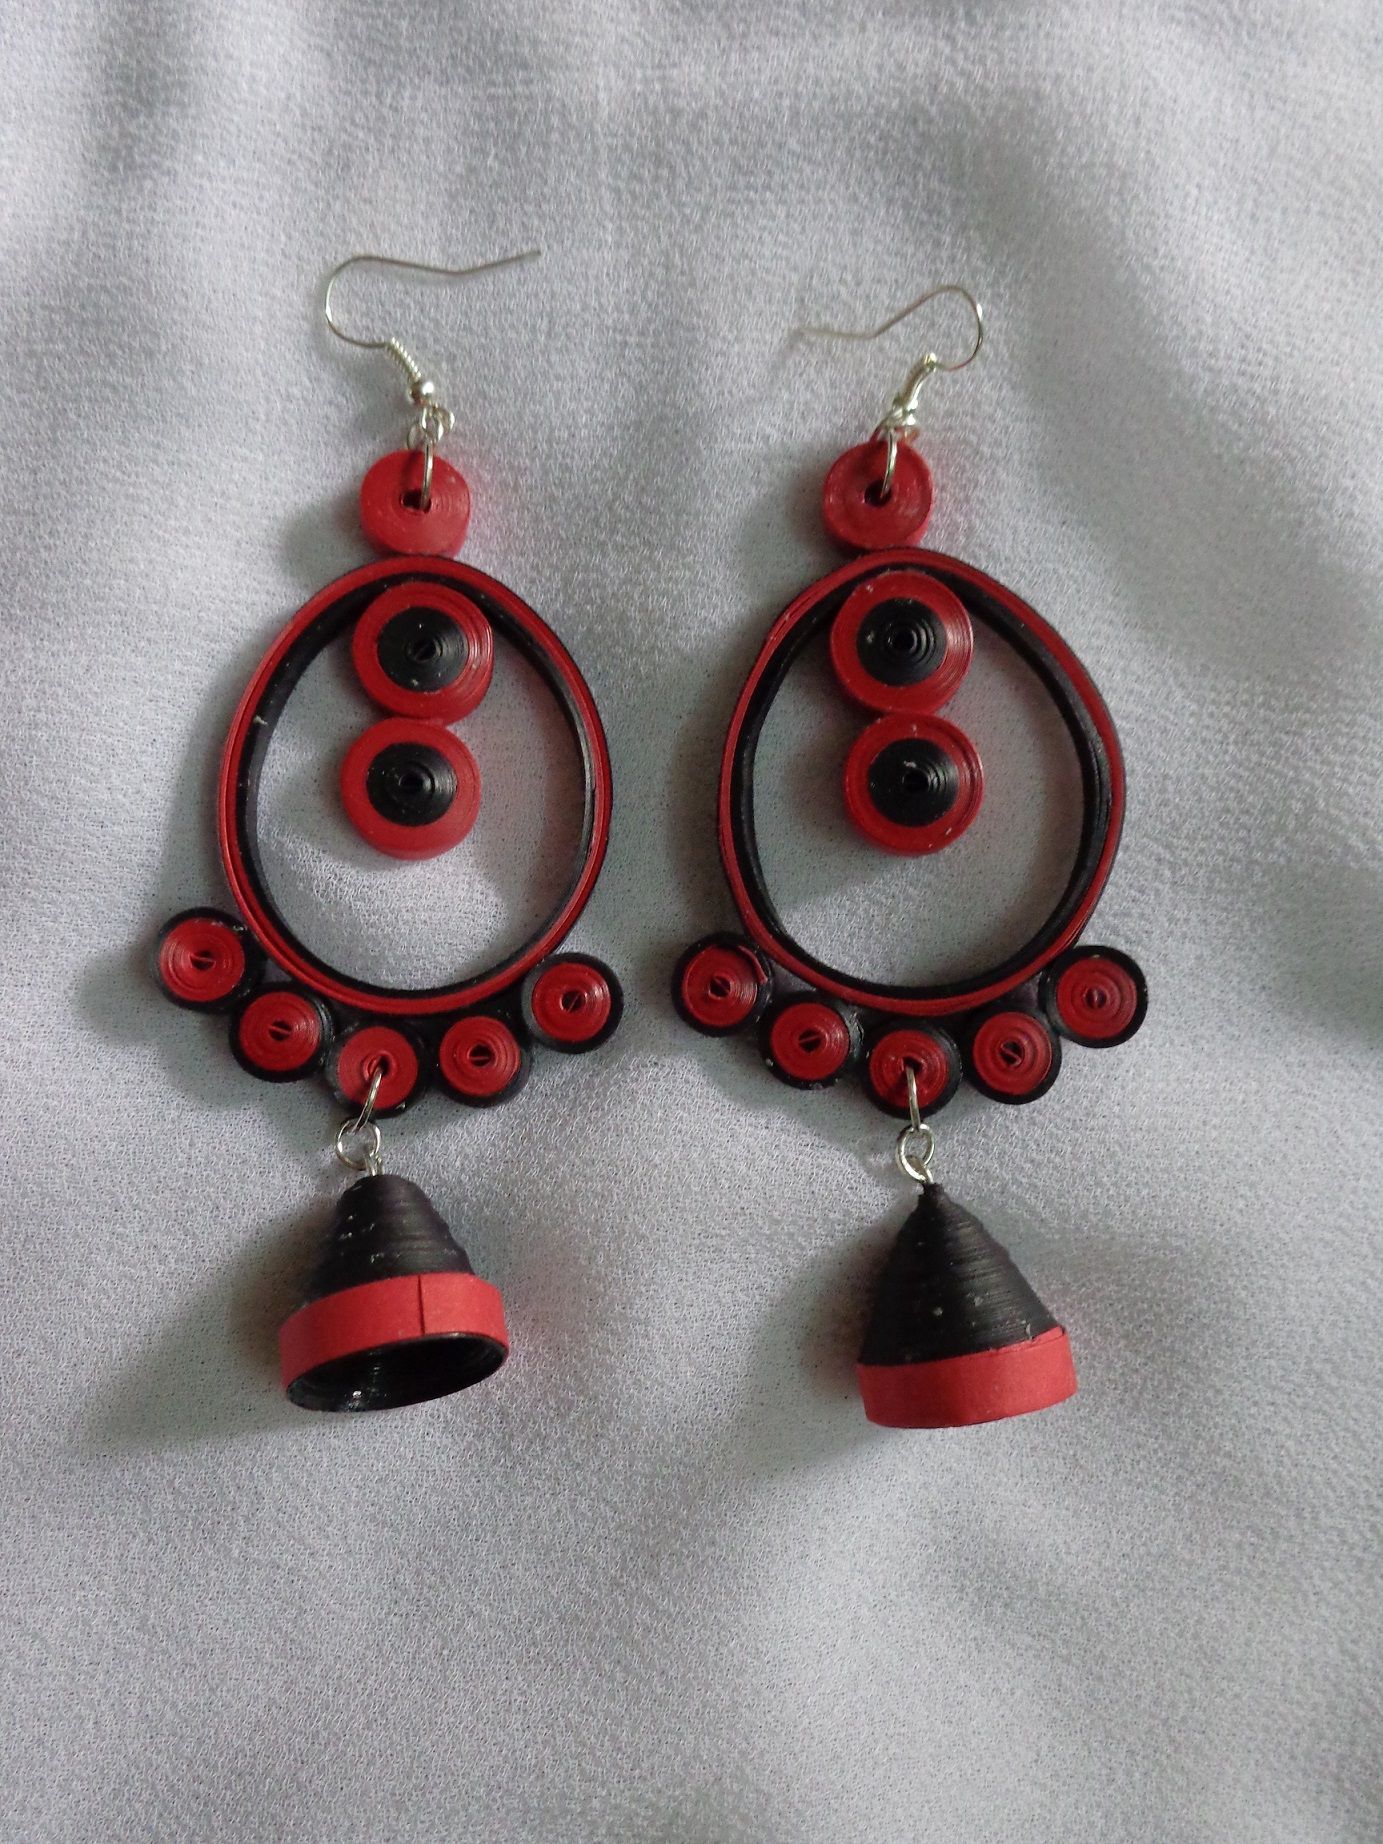 This Red And Black Large Earrings Are Made Up Of Papers Water Resistant Is 10cm Long 5cm Wide Earring